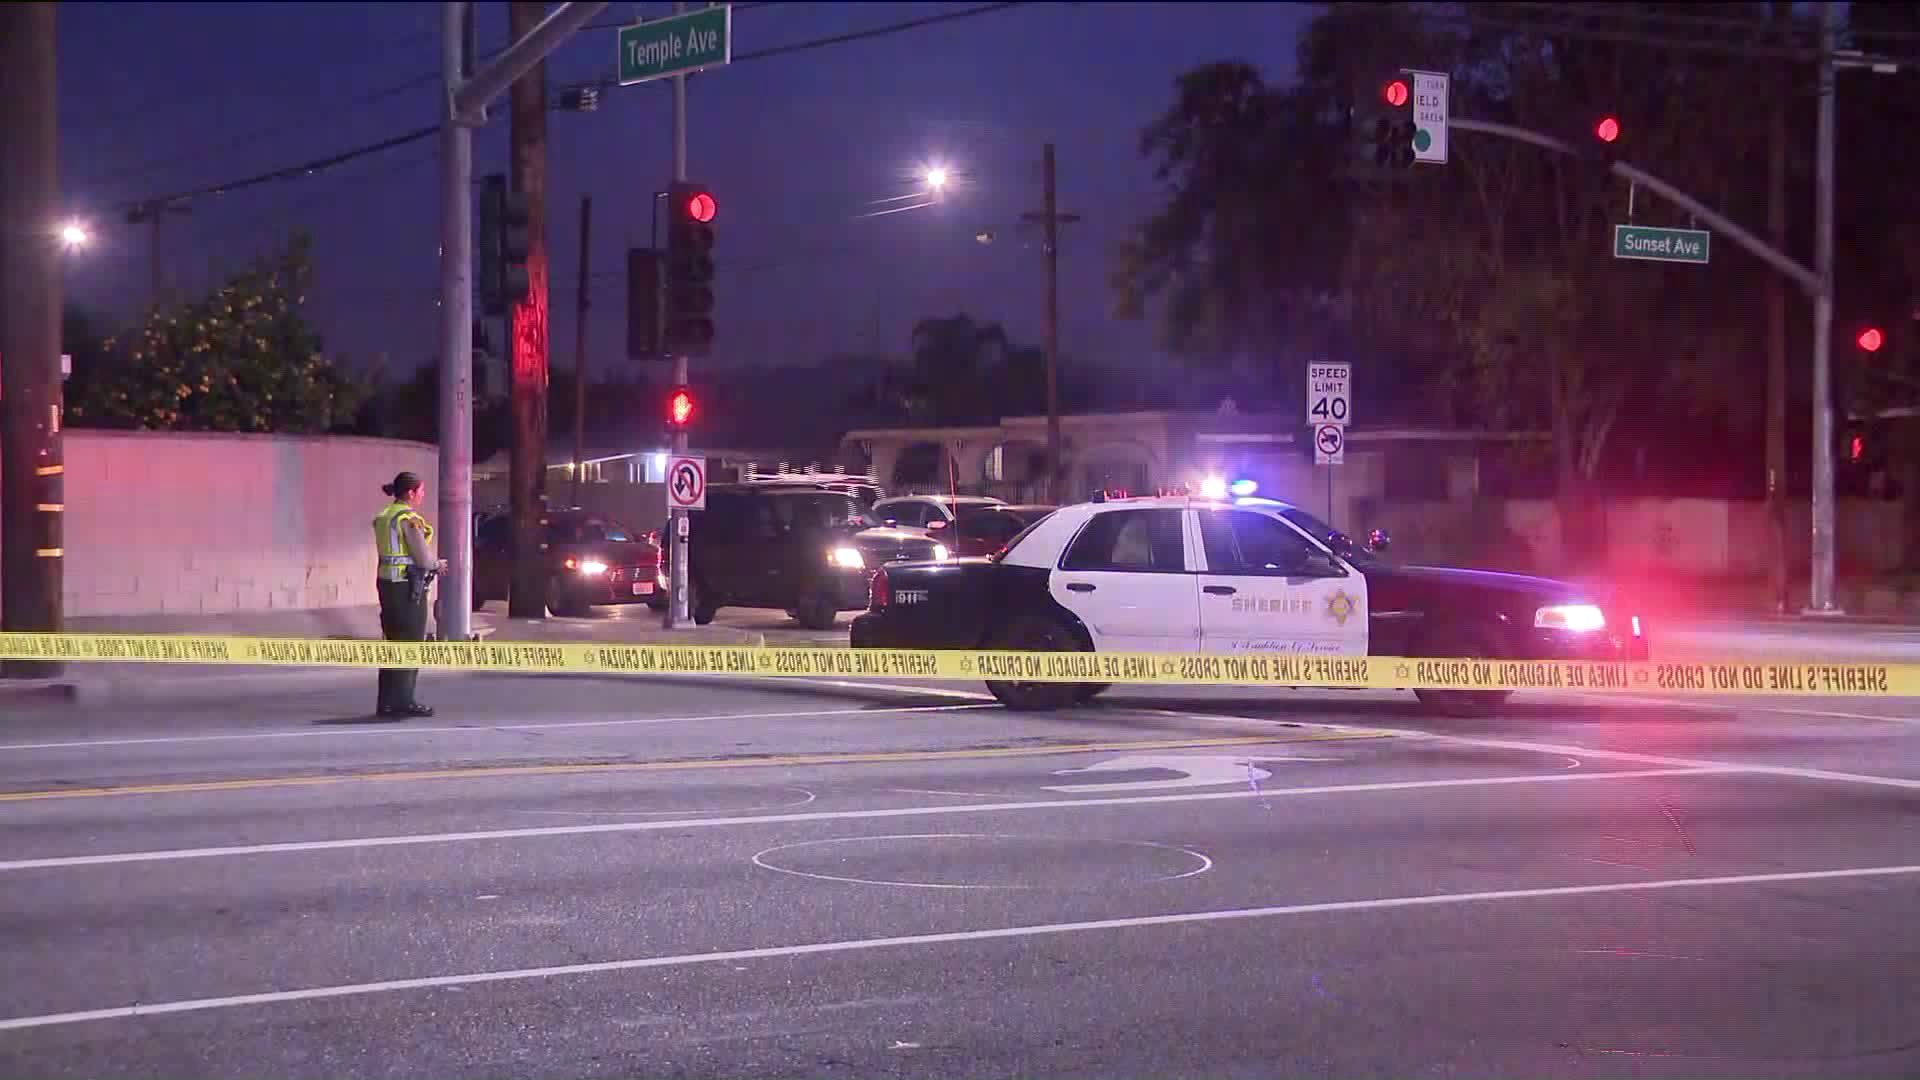 Authorities investigate the scene of a shooting that left two men wounded in La Puente on Jan. 30, 2020. (Credit: KTLA)